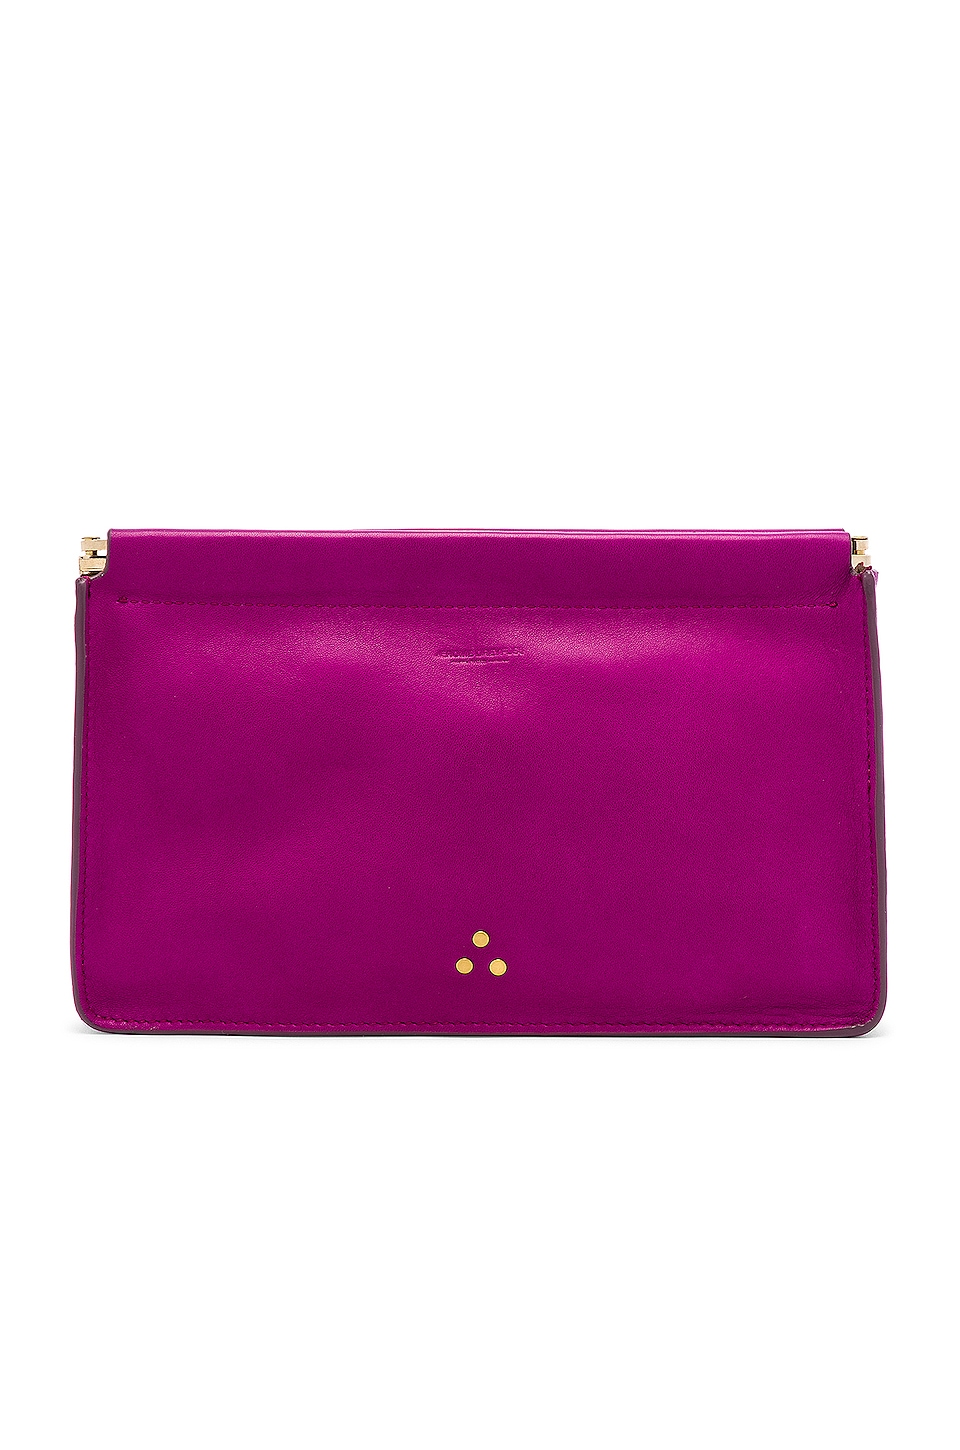 Jerome Dreyfuss Clic Clac Large Clutch in Bougainvilliers